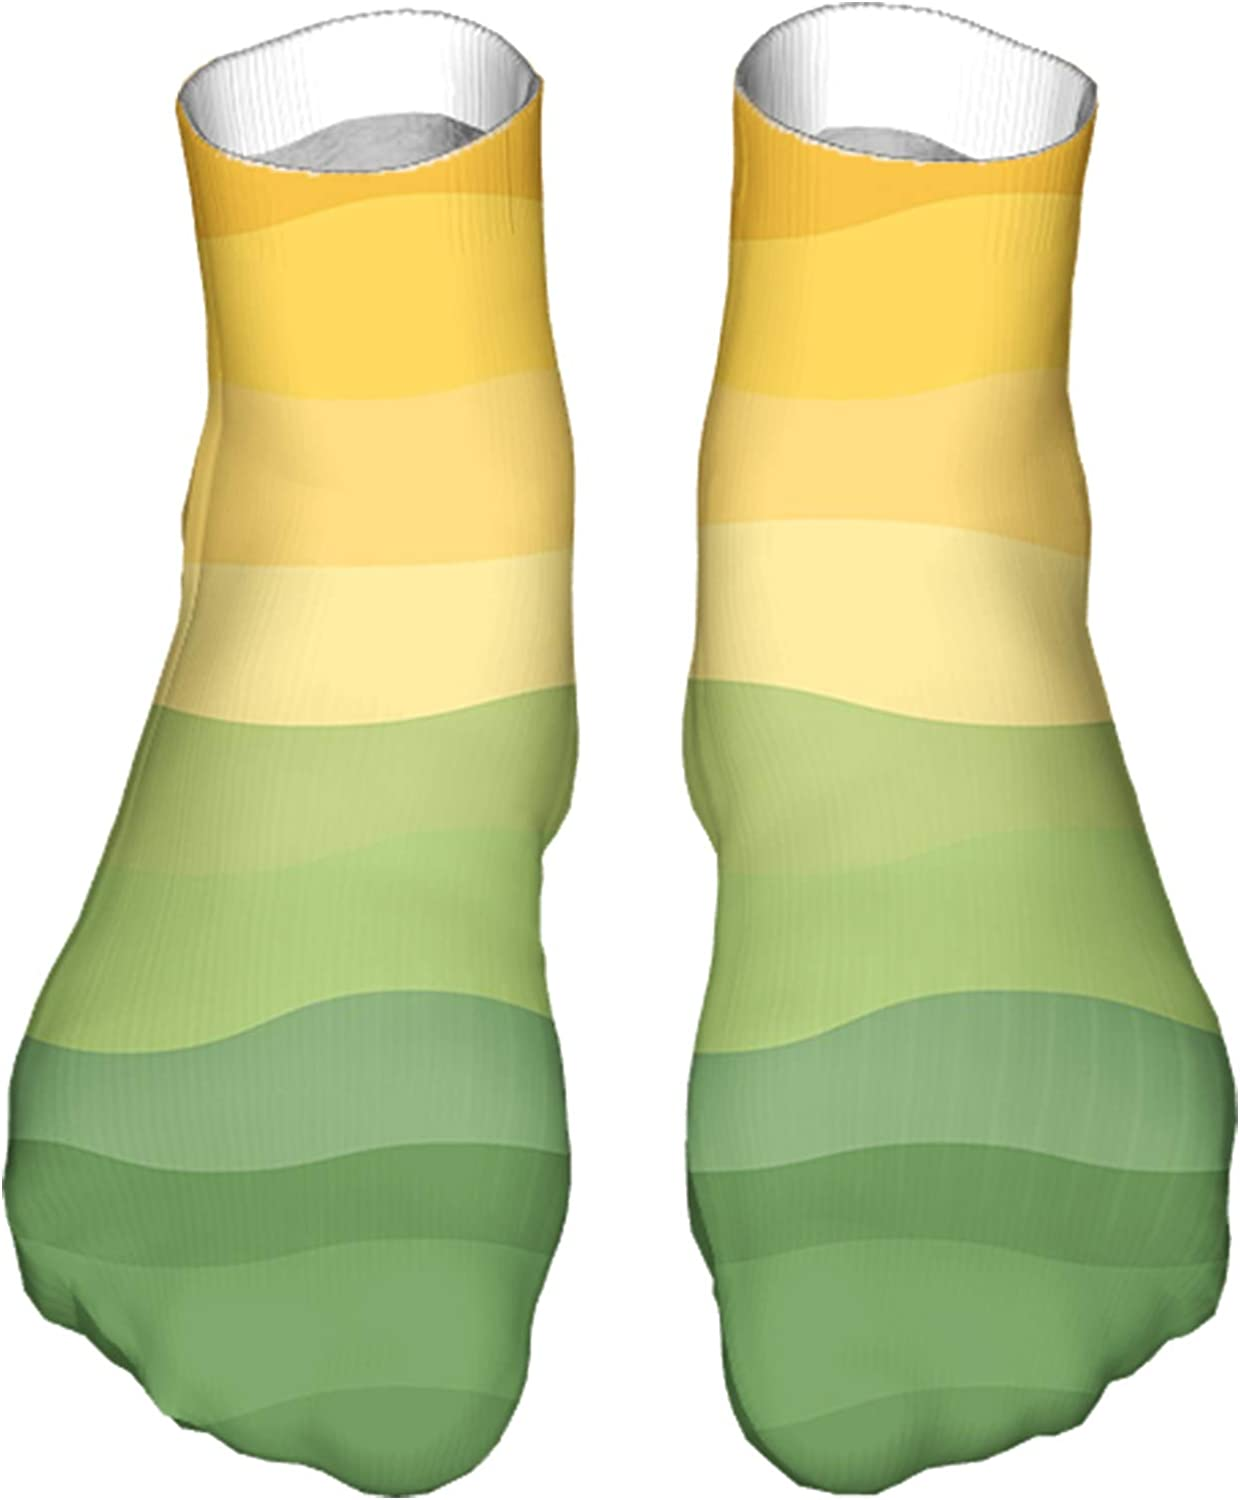 Men's and Women's Funny Casual Socks Green and Yellow Colored Wavy Lines Curves Earth Inspired